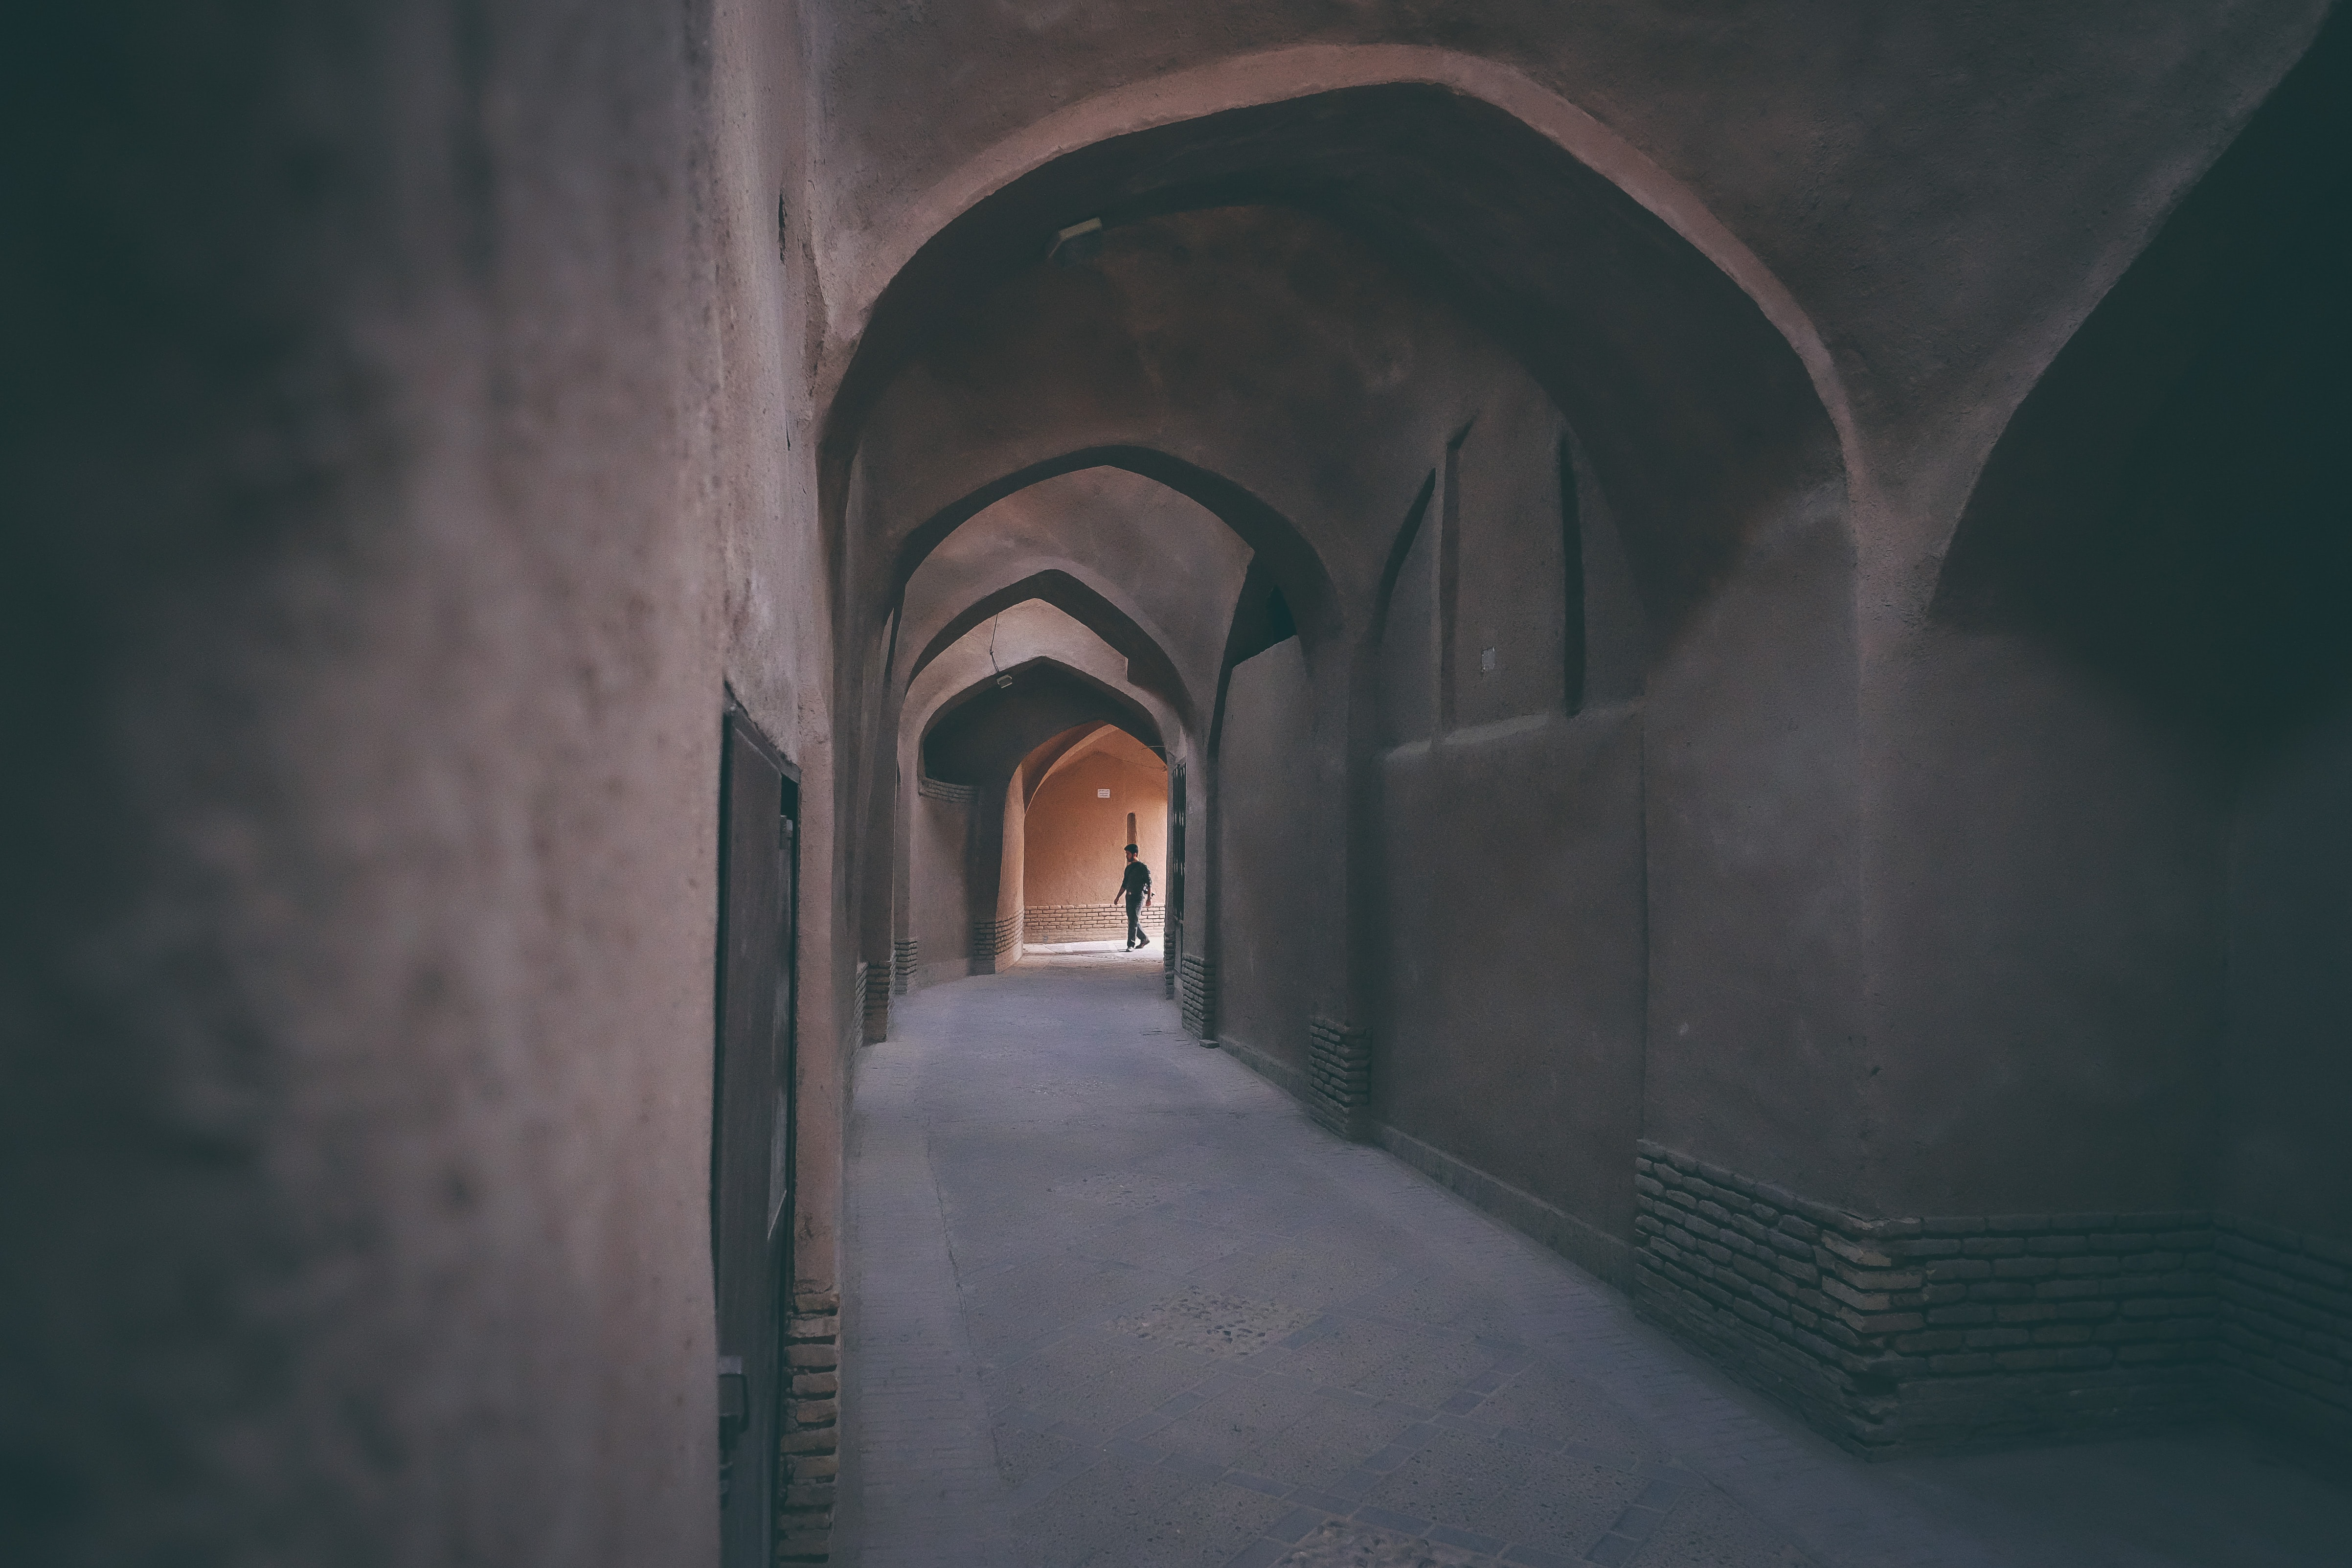 A person walks through an empty arched passageway in an old town.